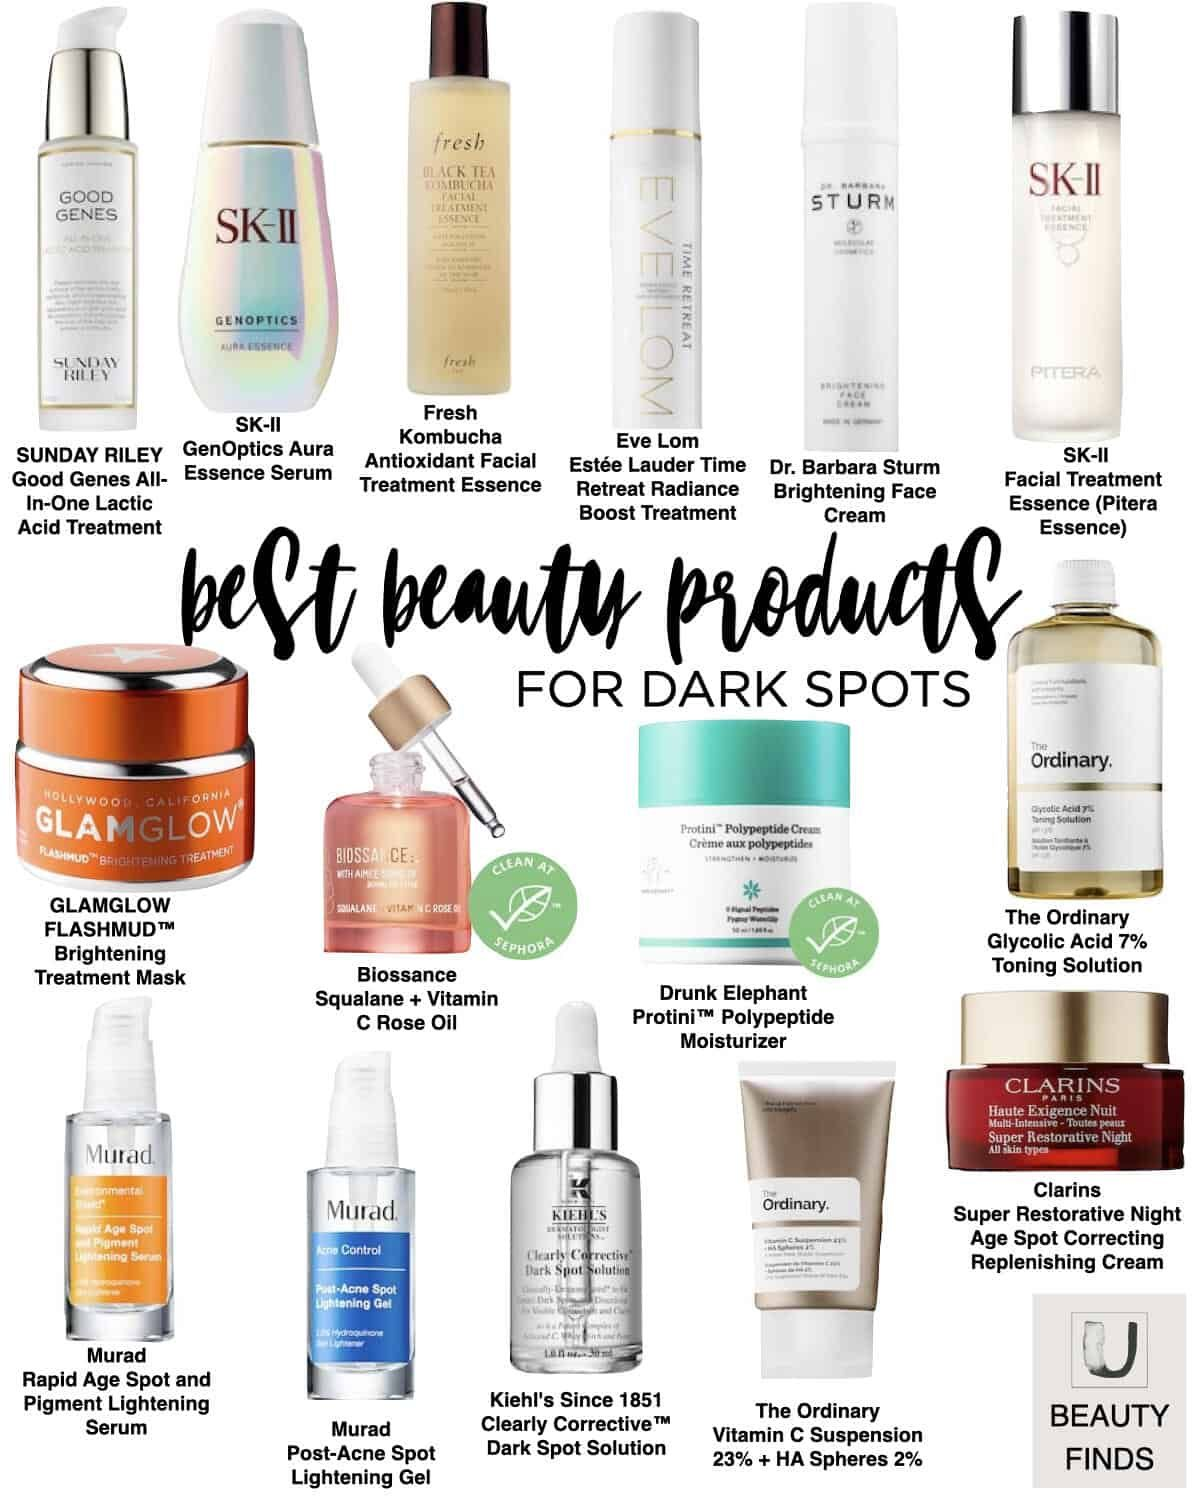 Skincare Best Sellers For Every Skin Concern An Unblurred Lady In 2020 Skin Care Top Beauty Products Serum Treatment